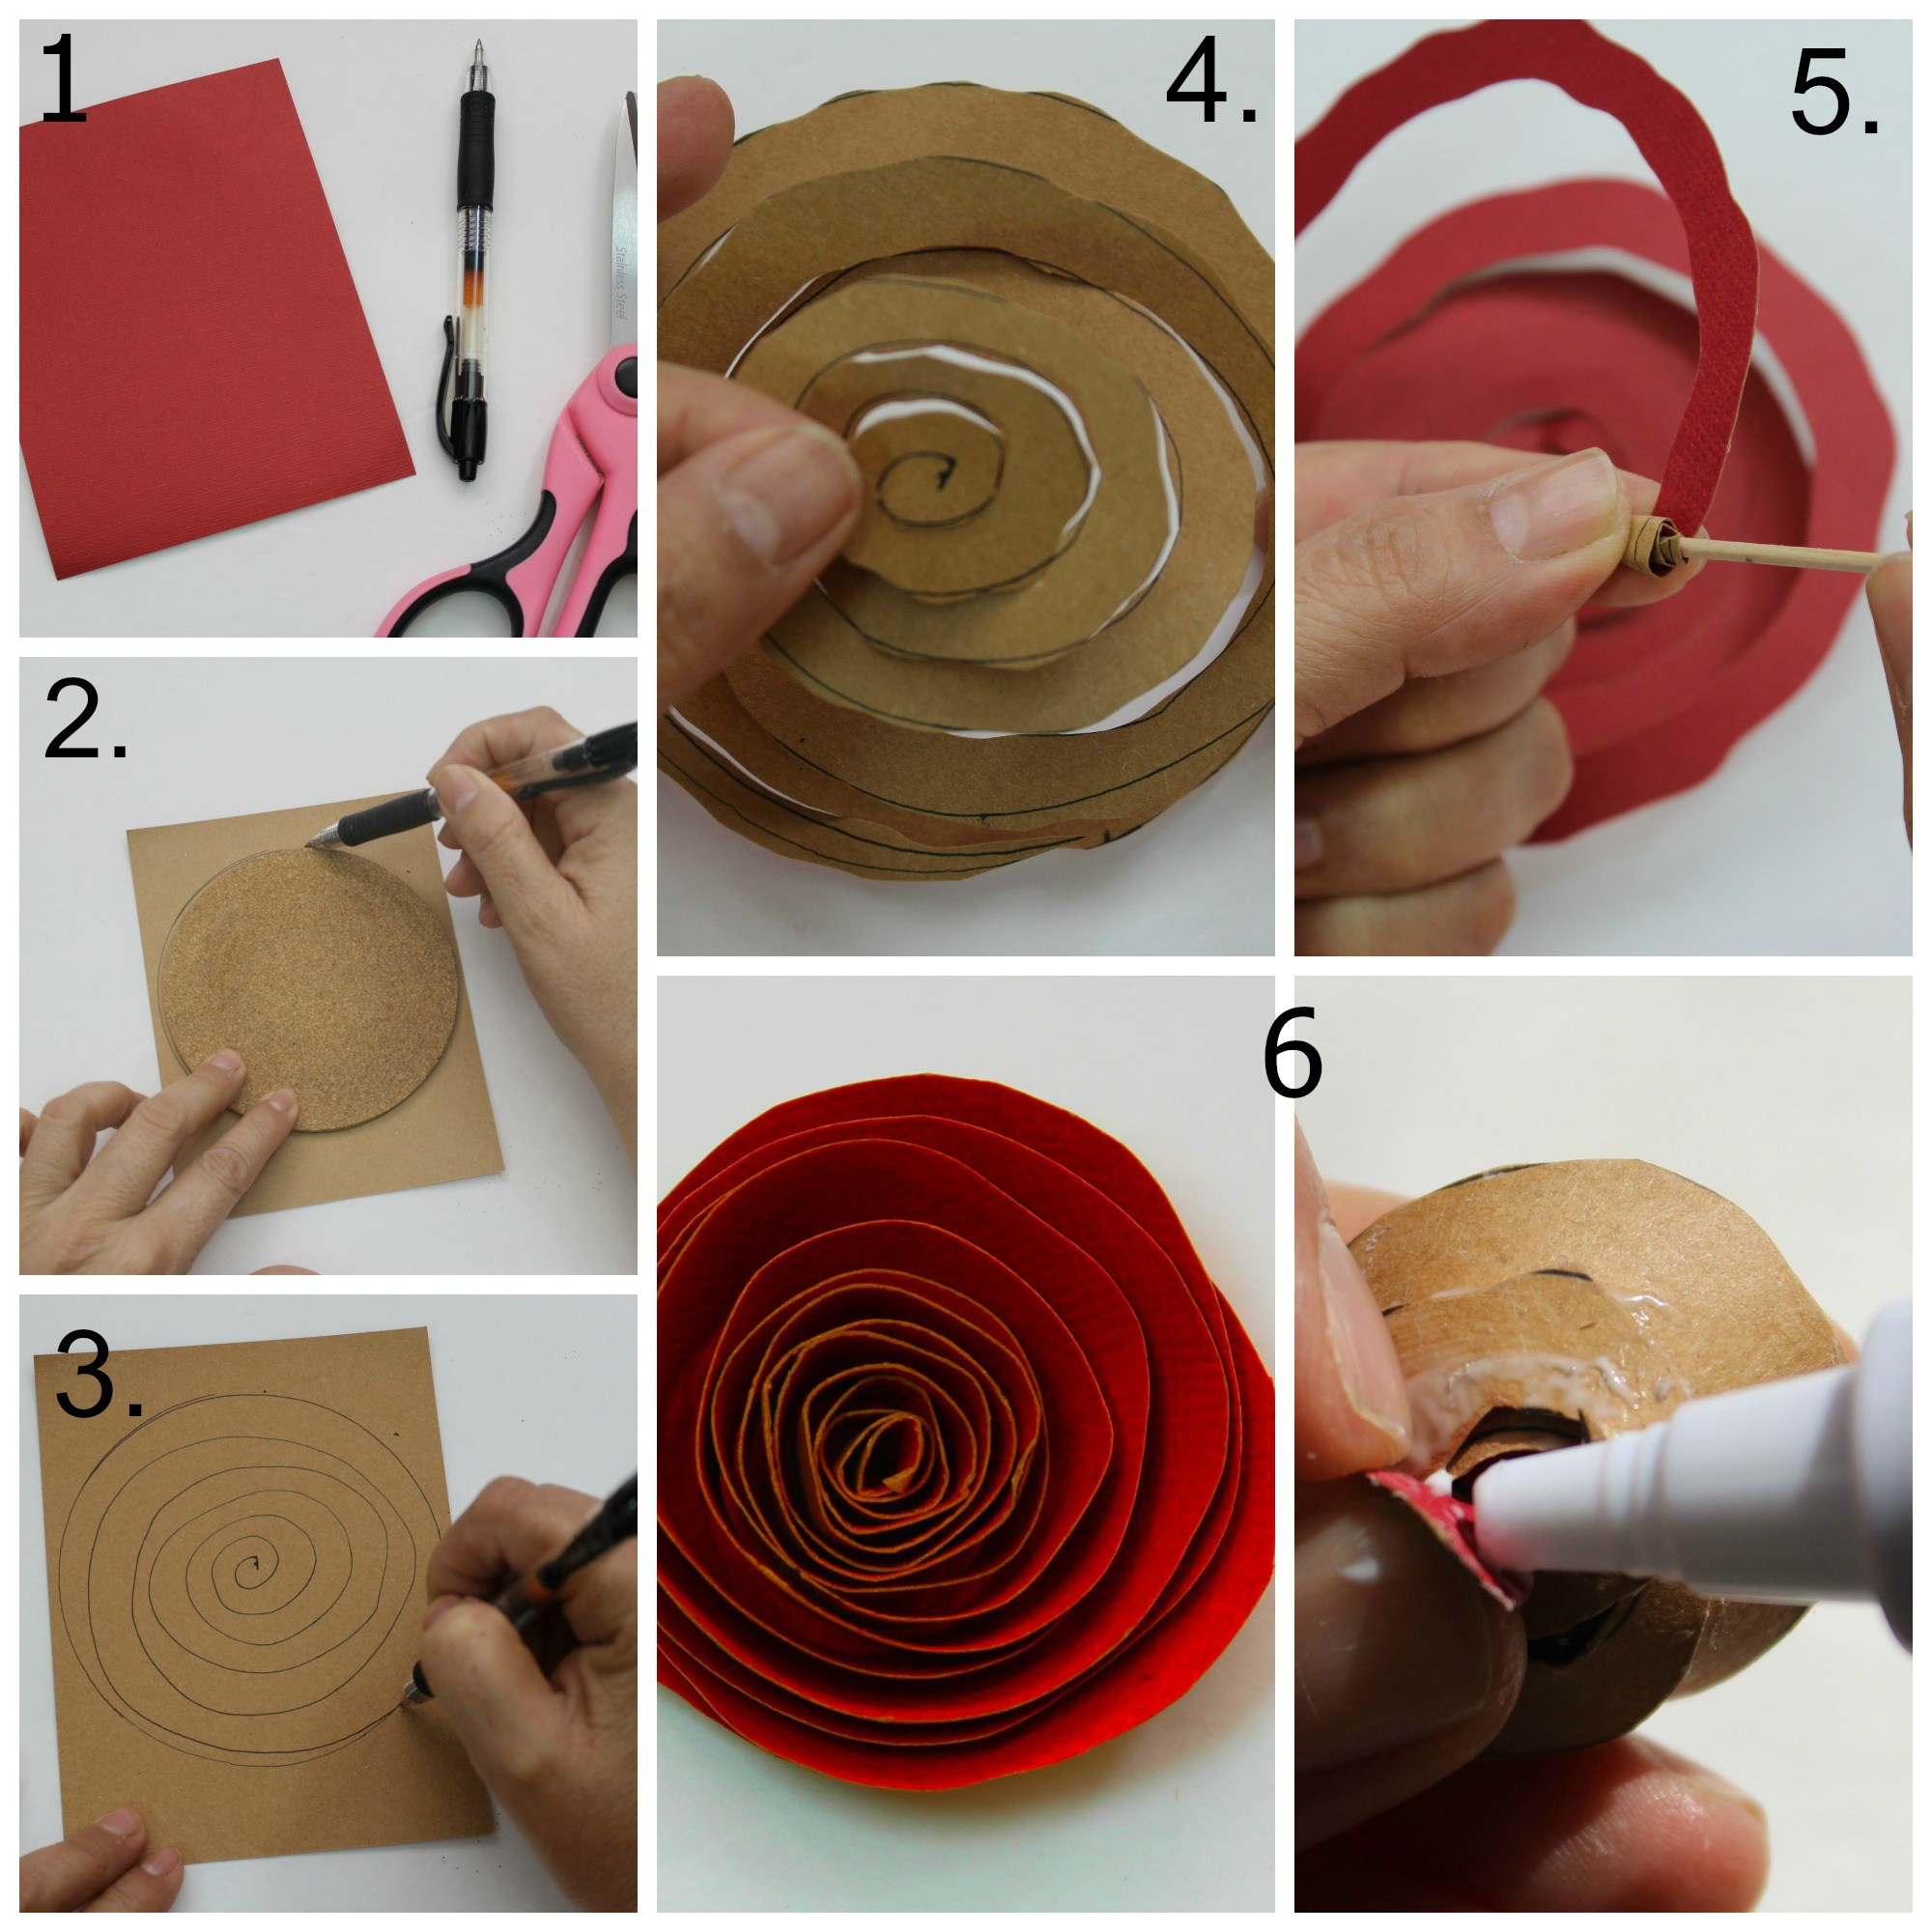 How to make paper quilling flowers rose flowers healthy gallery of mahligai idea quilled flower roses with quilling flowers rose quilling flowers rose custom quilled frame climbing pink rose bush mightylinksfo